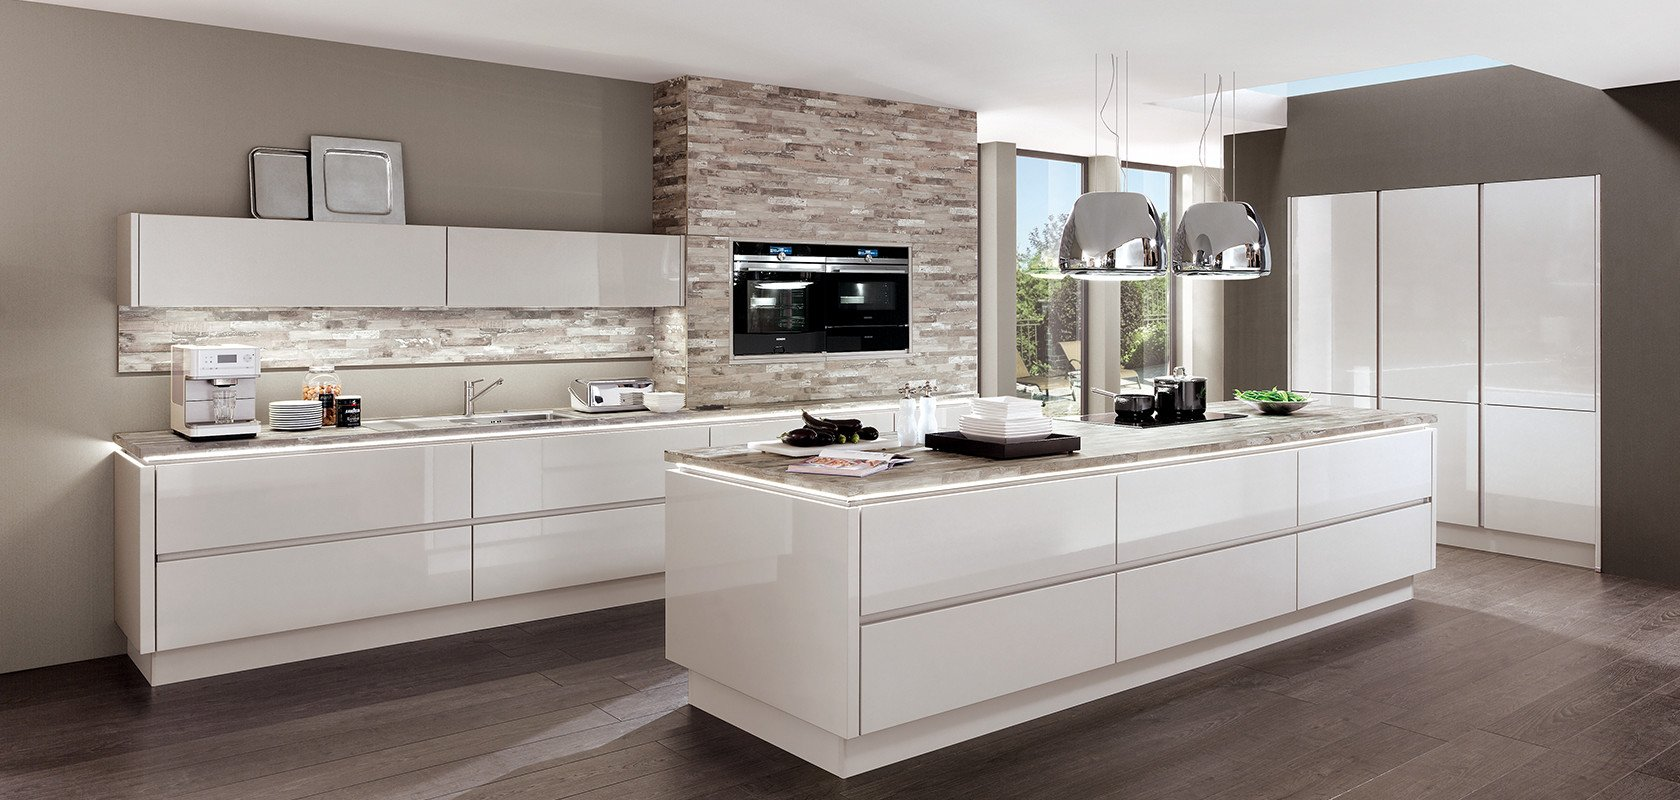 Kitchen Ideas For 2019 Timbercraft German Kitchens